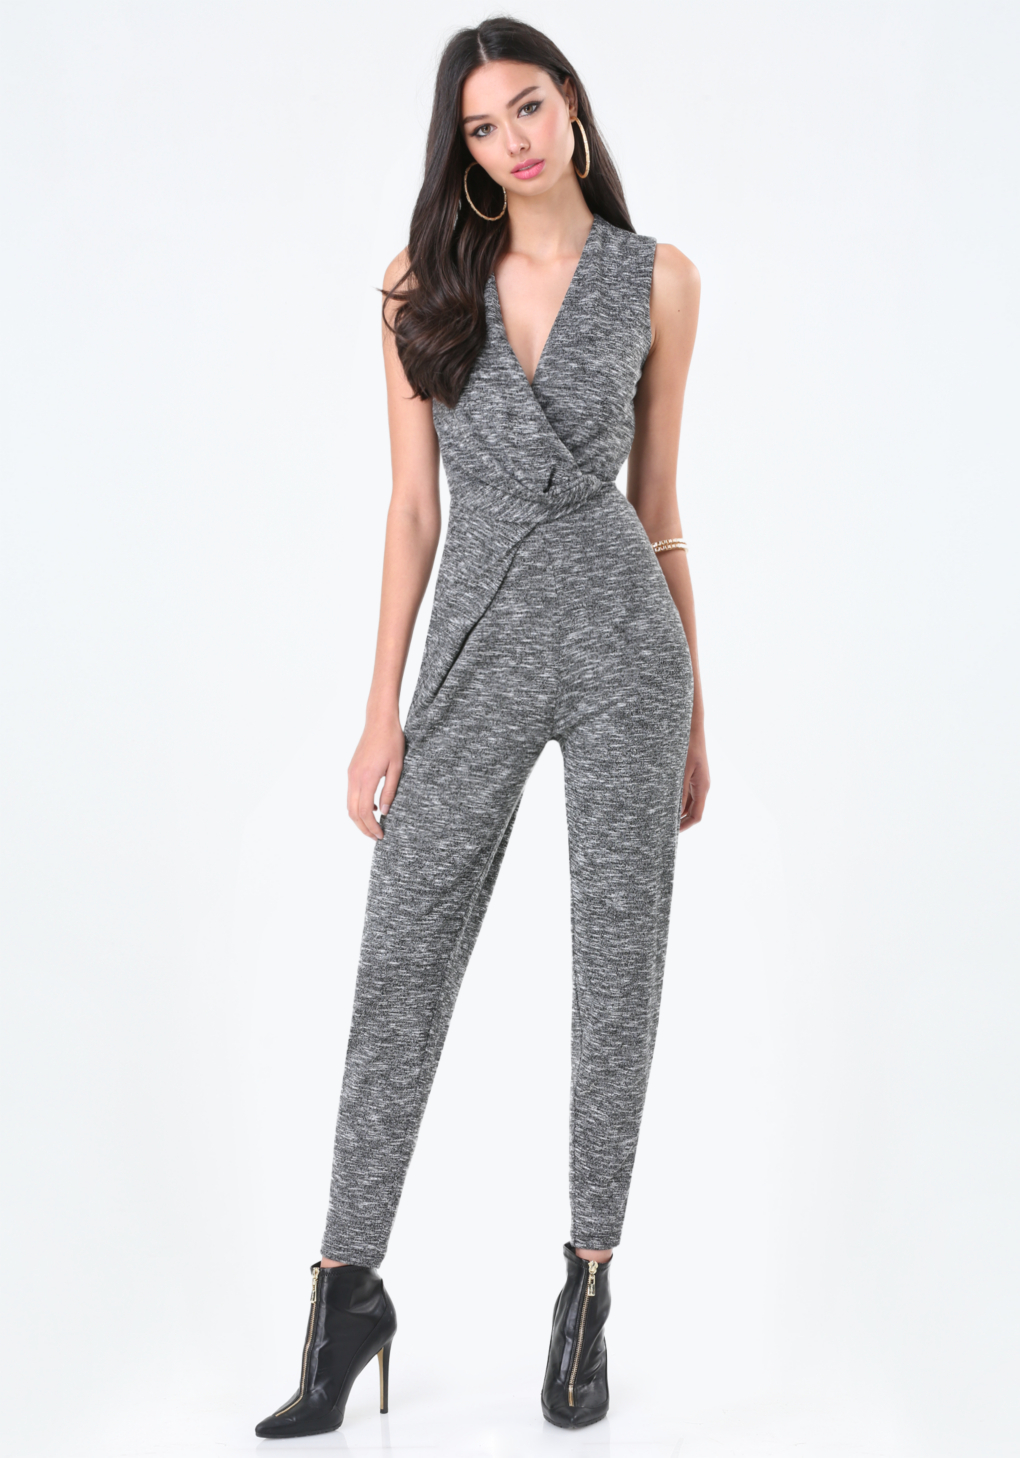 ca99988ec0a Lyst - Bebe Railey Space Dye Jumpsuit in Gray